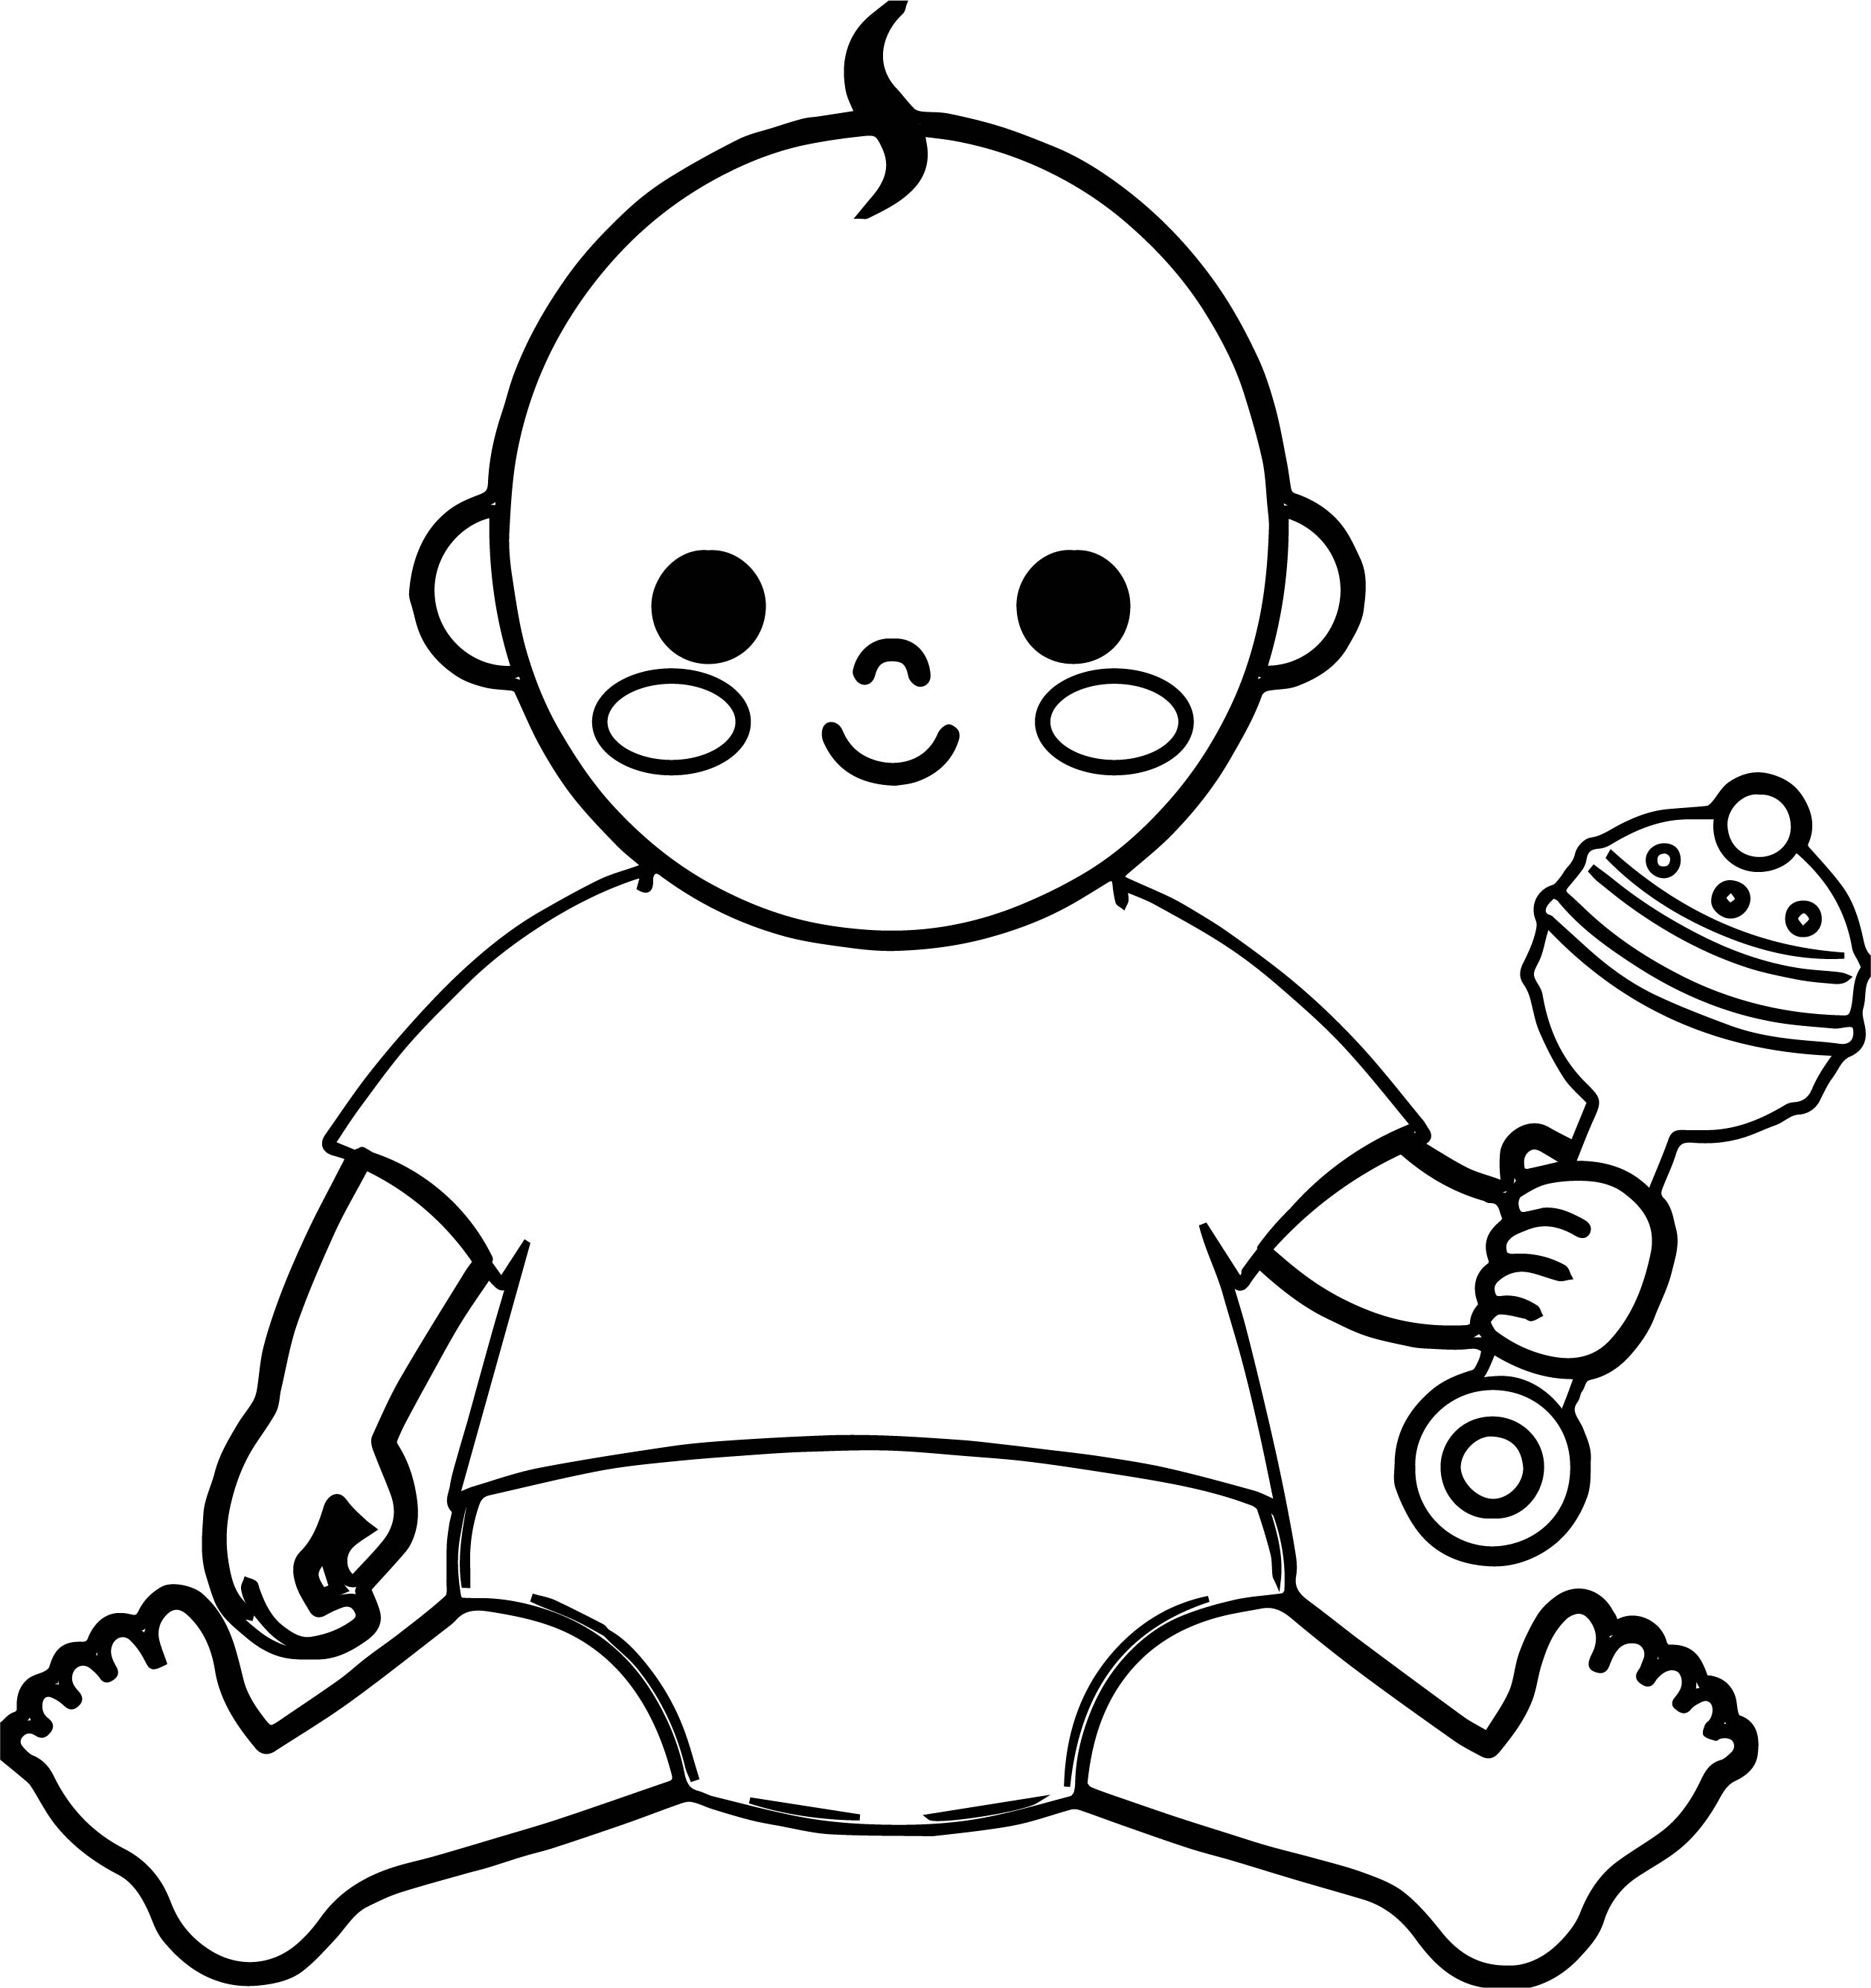 Toys For Boys To Color : Baby boy and toy coloring page wecoloringpage